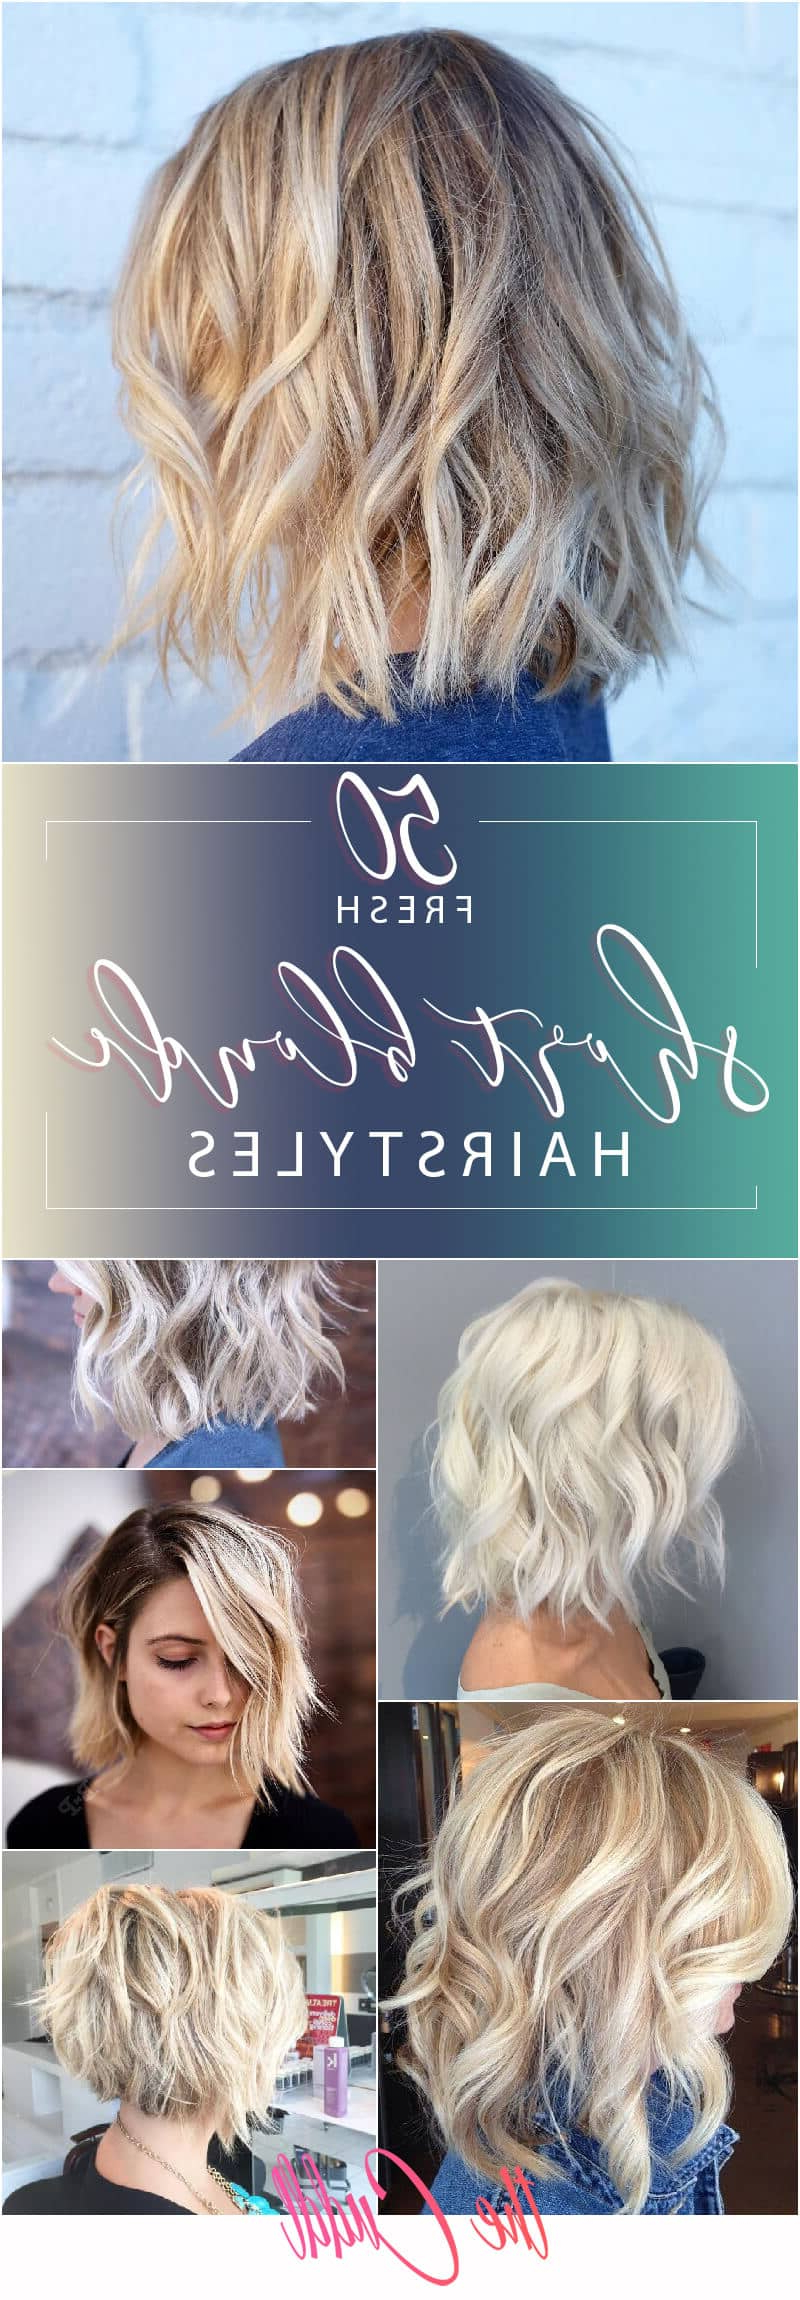 50 Fresh Short Blonde Hair Ideas To Update Your Style In 2018 With Regard To Short Blonde Styles (View 18 of 25)